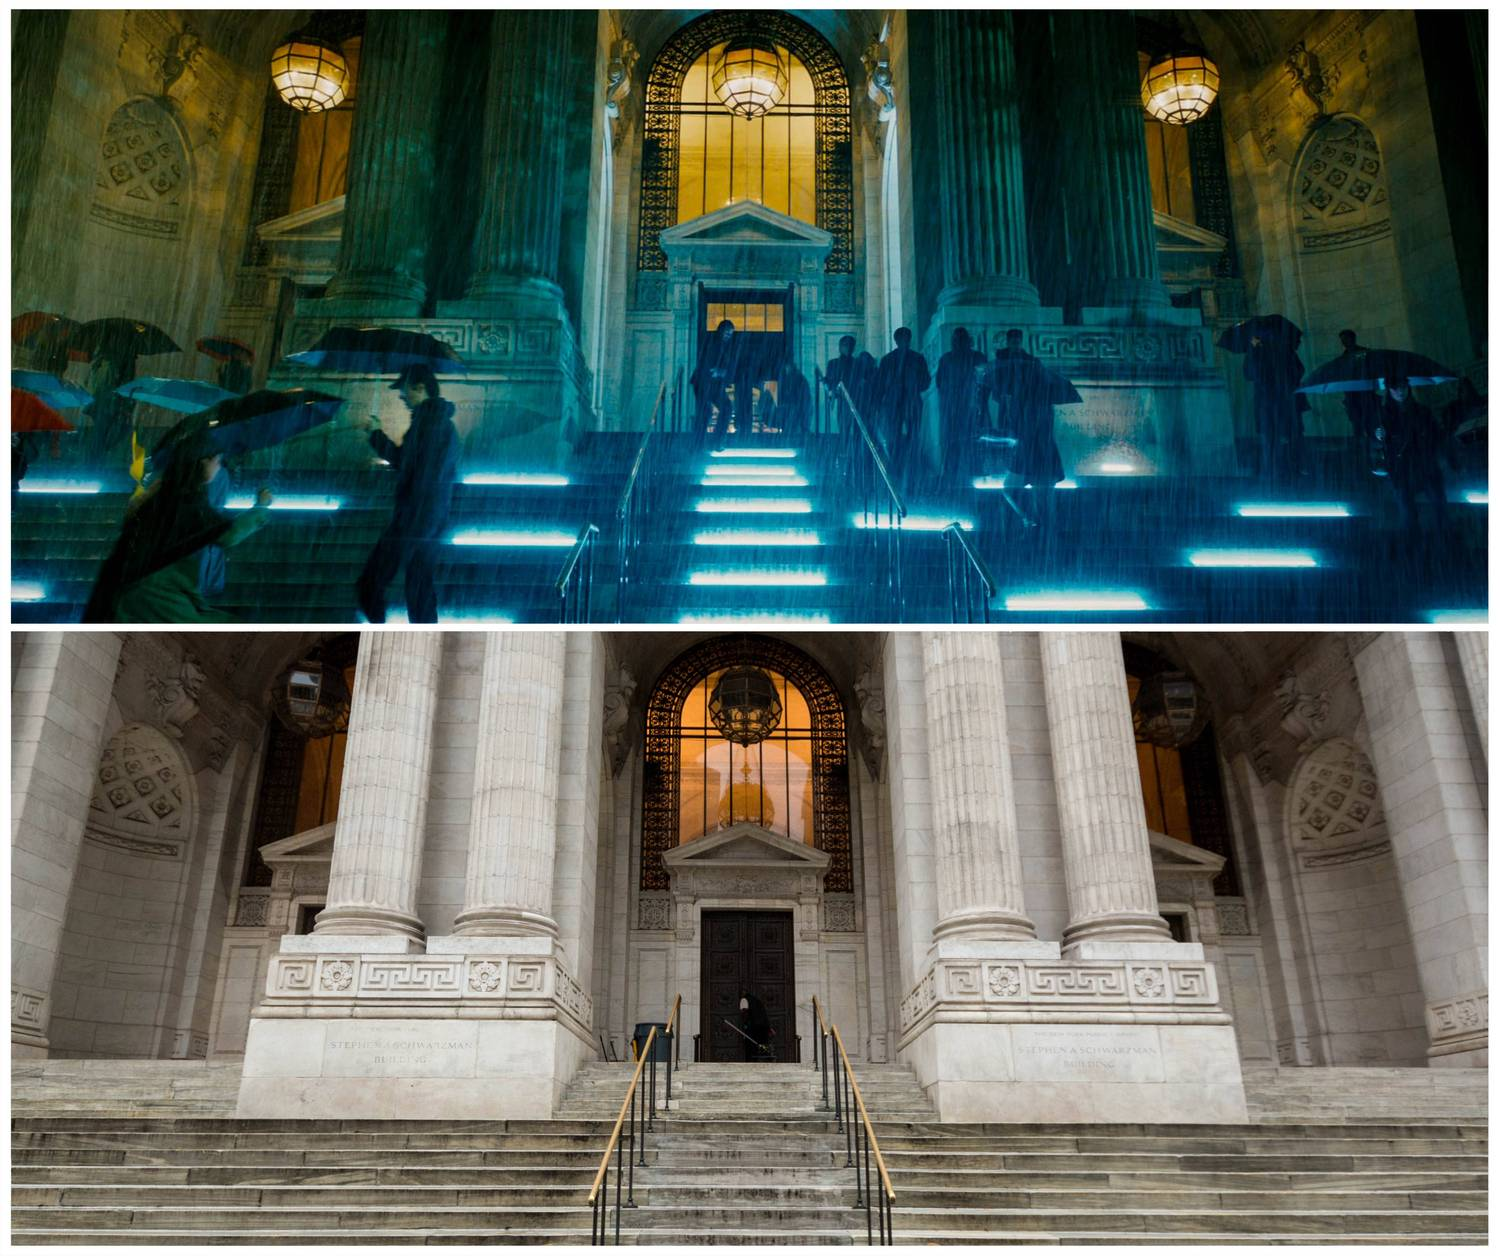 John Wick 3 New York Public Library